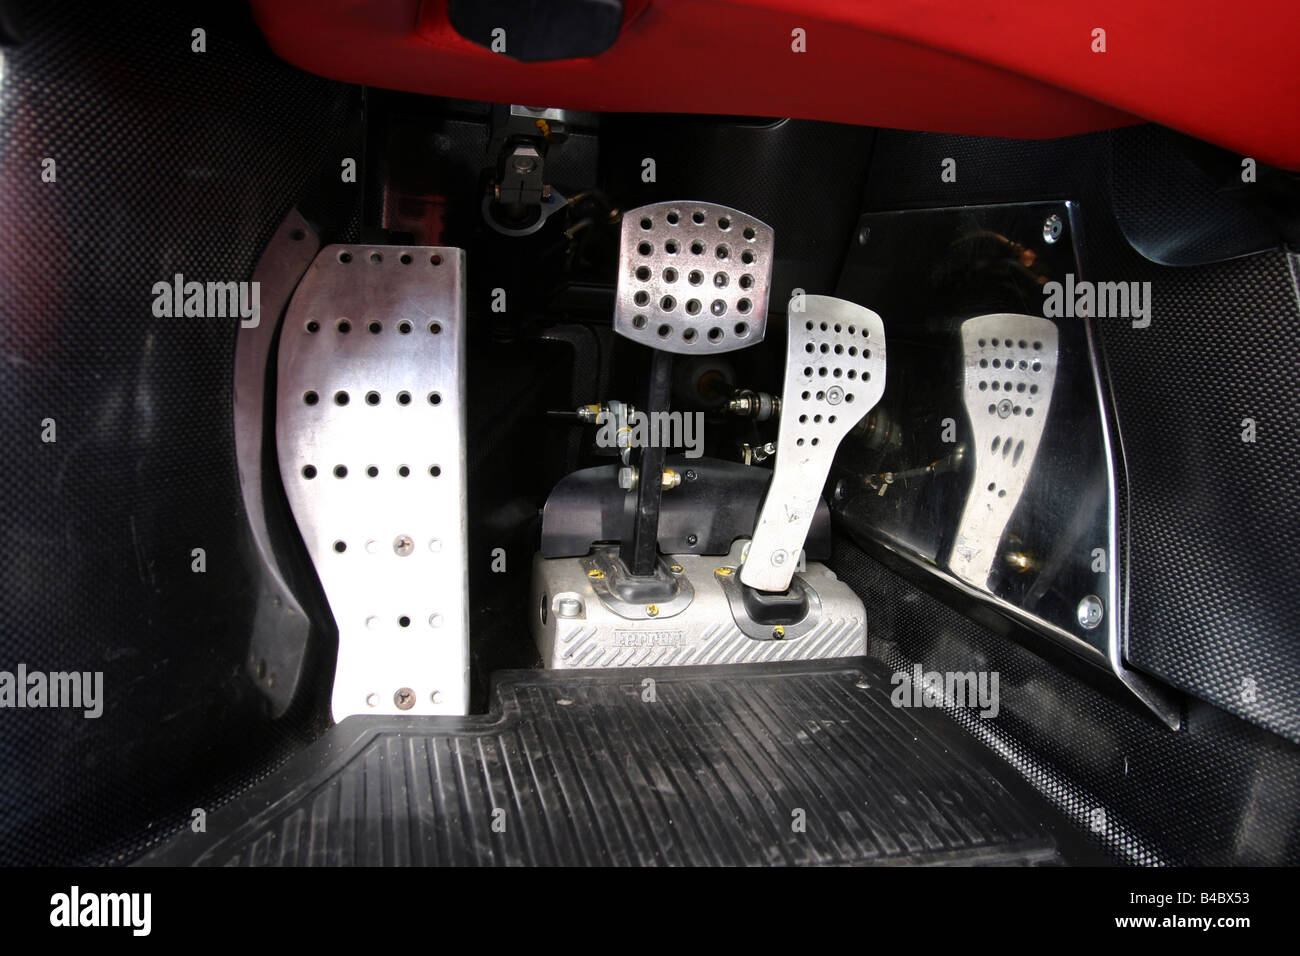 Car, Ferrari Enzo Ferrari, roadster, model year 2002-, Coupe/coupe, red, Detailed view, Interior view, Pedals, technique/accesso - Stock Image